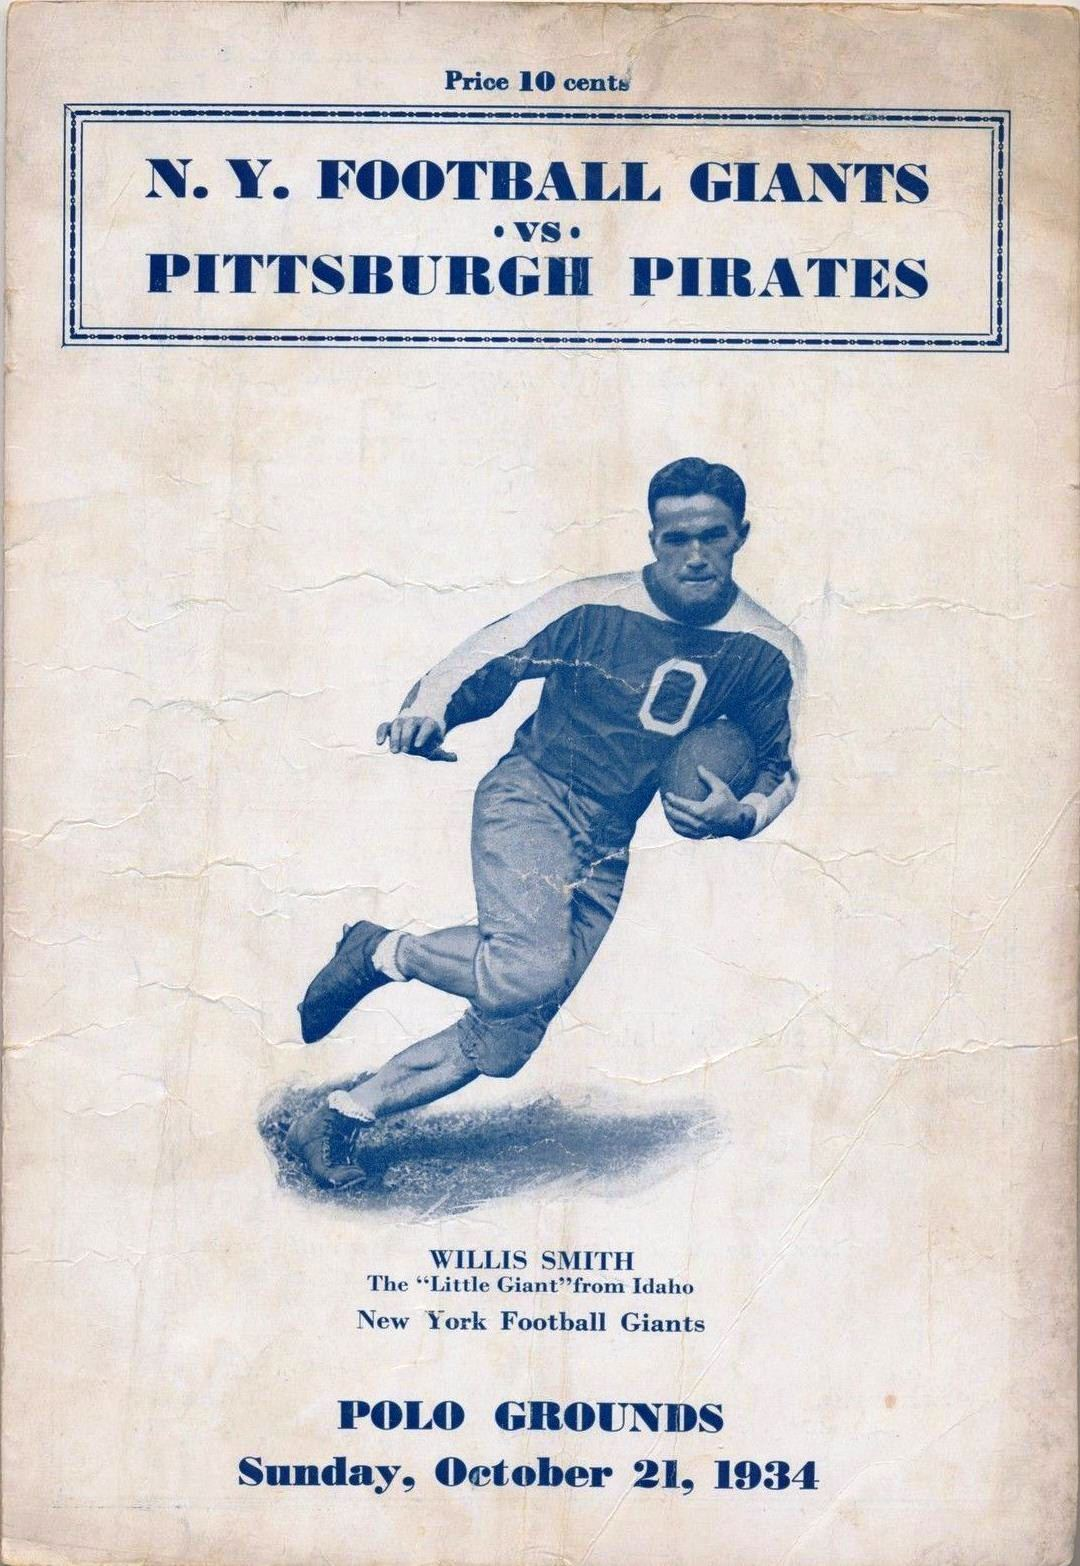 Willis Smith, New York Giants (October 21, 1934)